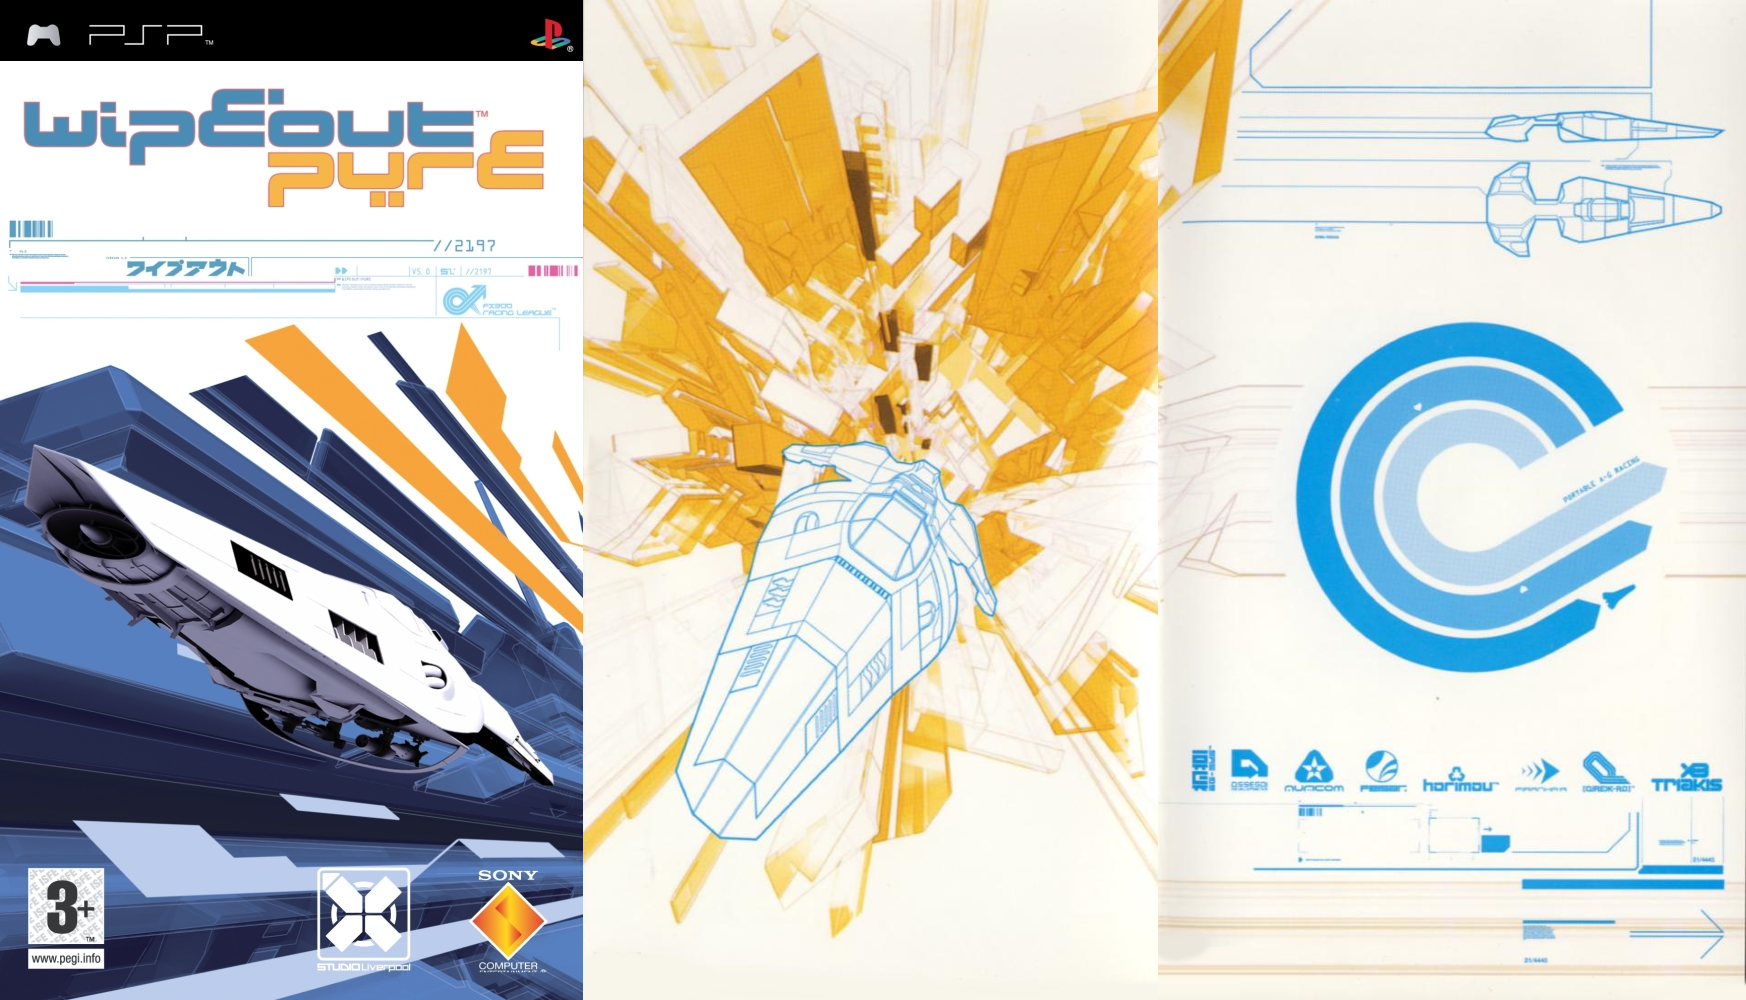 Cover art for wipeout pure created by the designers for The designers republic